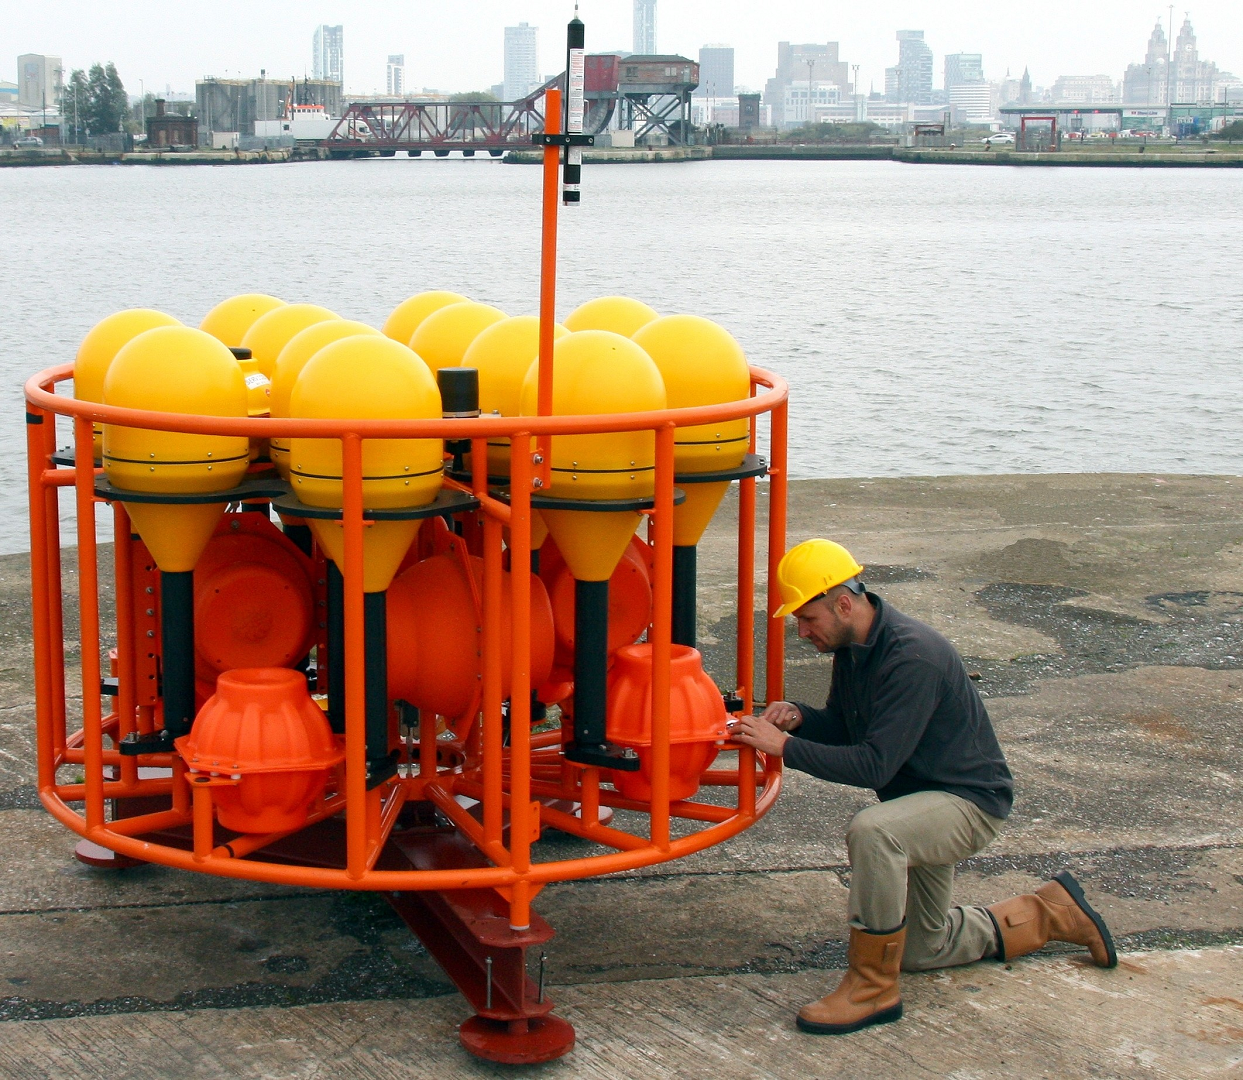 MYRTLE-X is capable of staying on the seabed for over 10 years at depths of up to 6000 metres